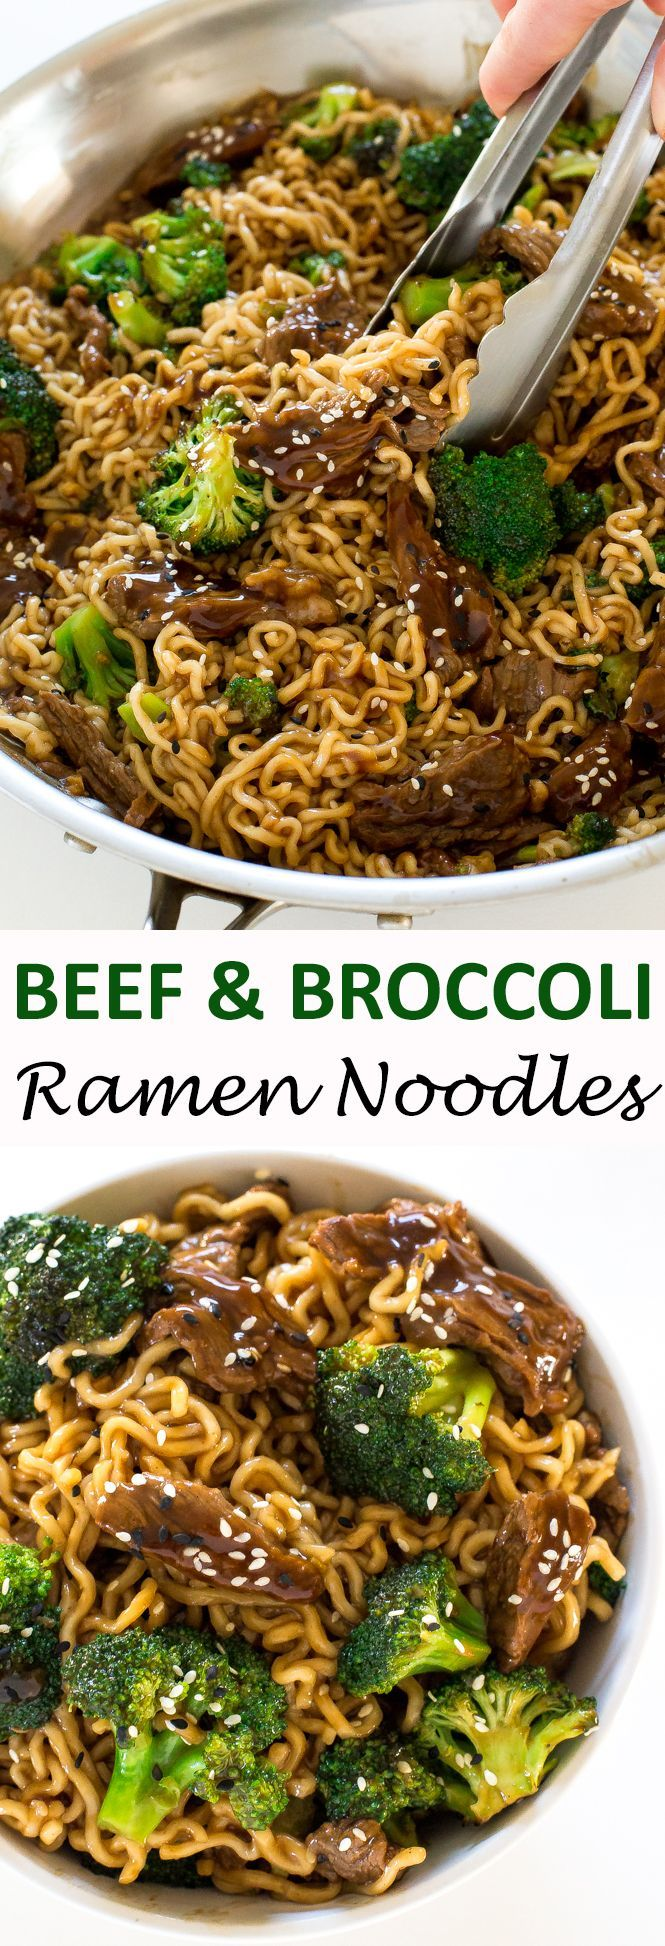 One Skillet Beef and Broccoli Ramen. Everything you love about beef and broccoli but with ramen noodles! | chefsavvy.com #recipe #food #beef #broccoli #ramen #noodles | https://lomejordelaweb.es/